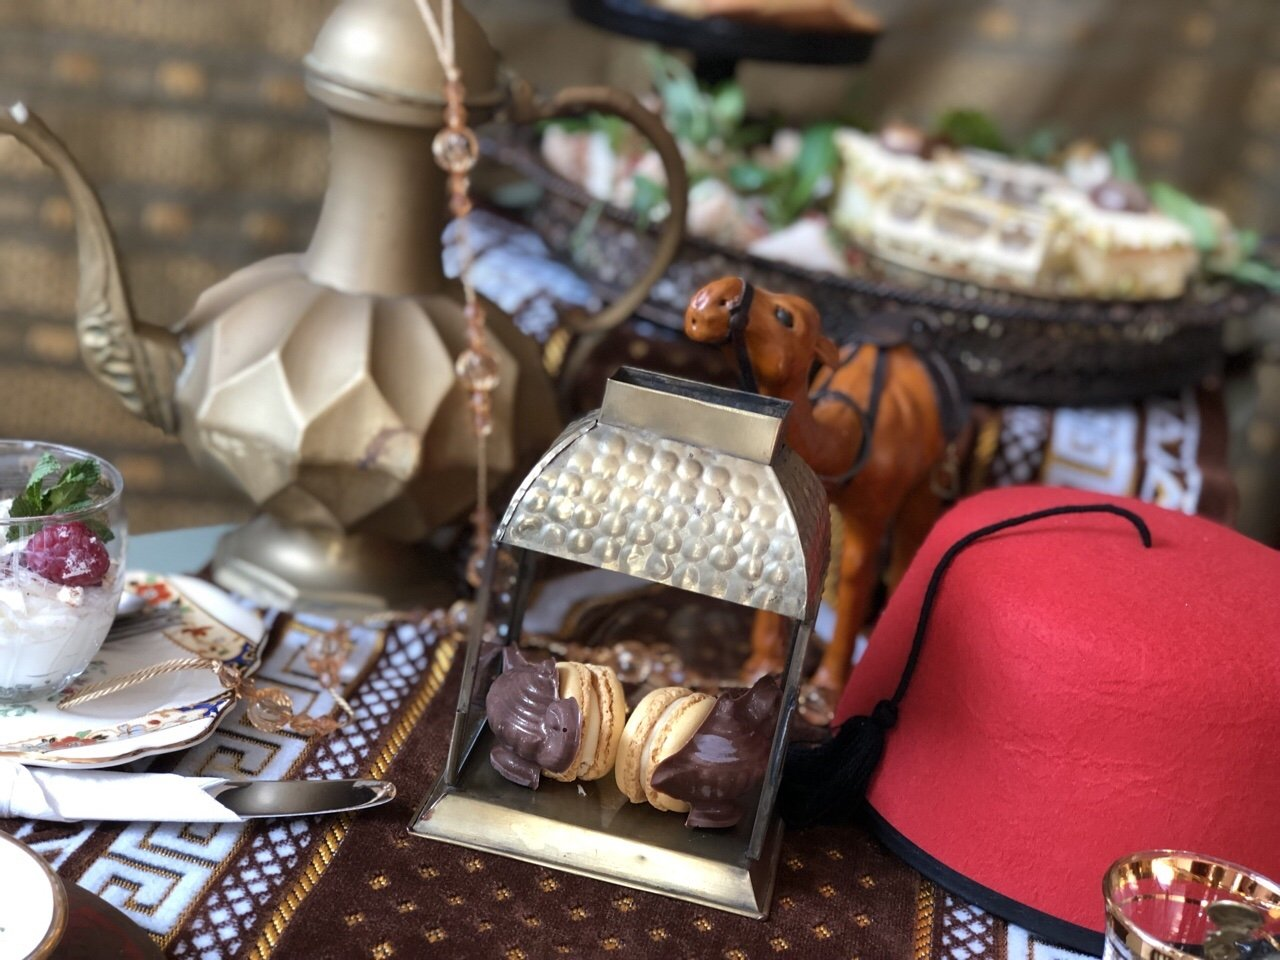 Genie lamp macaroons from Aladdin themed afternoon tea